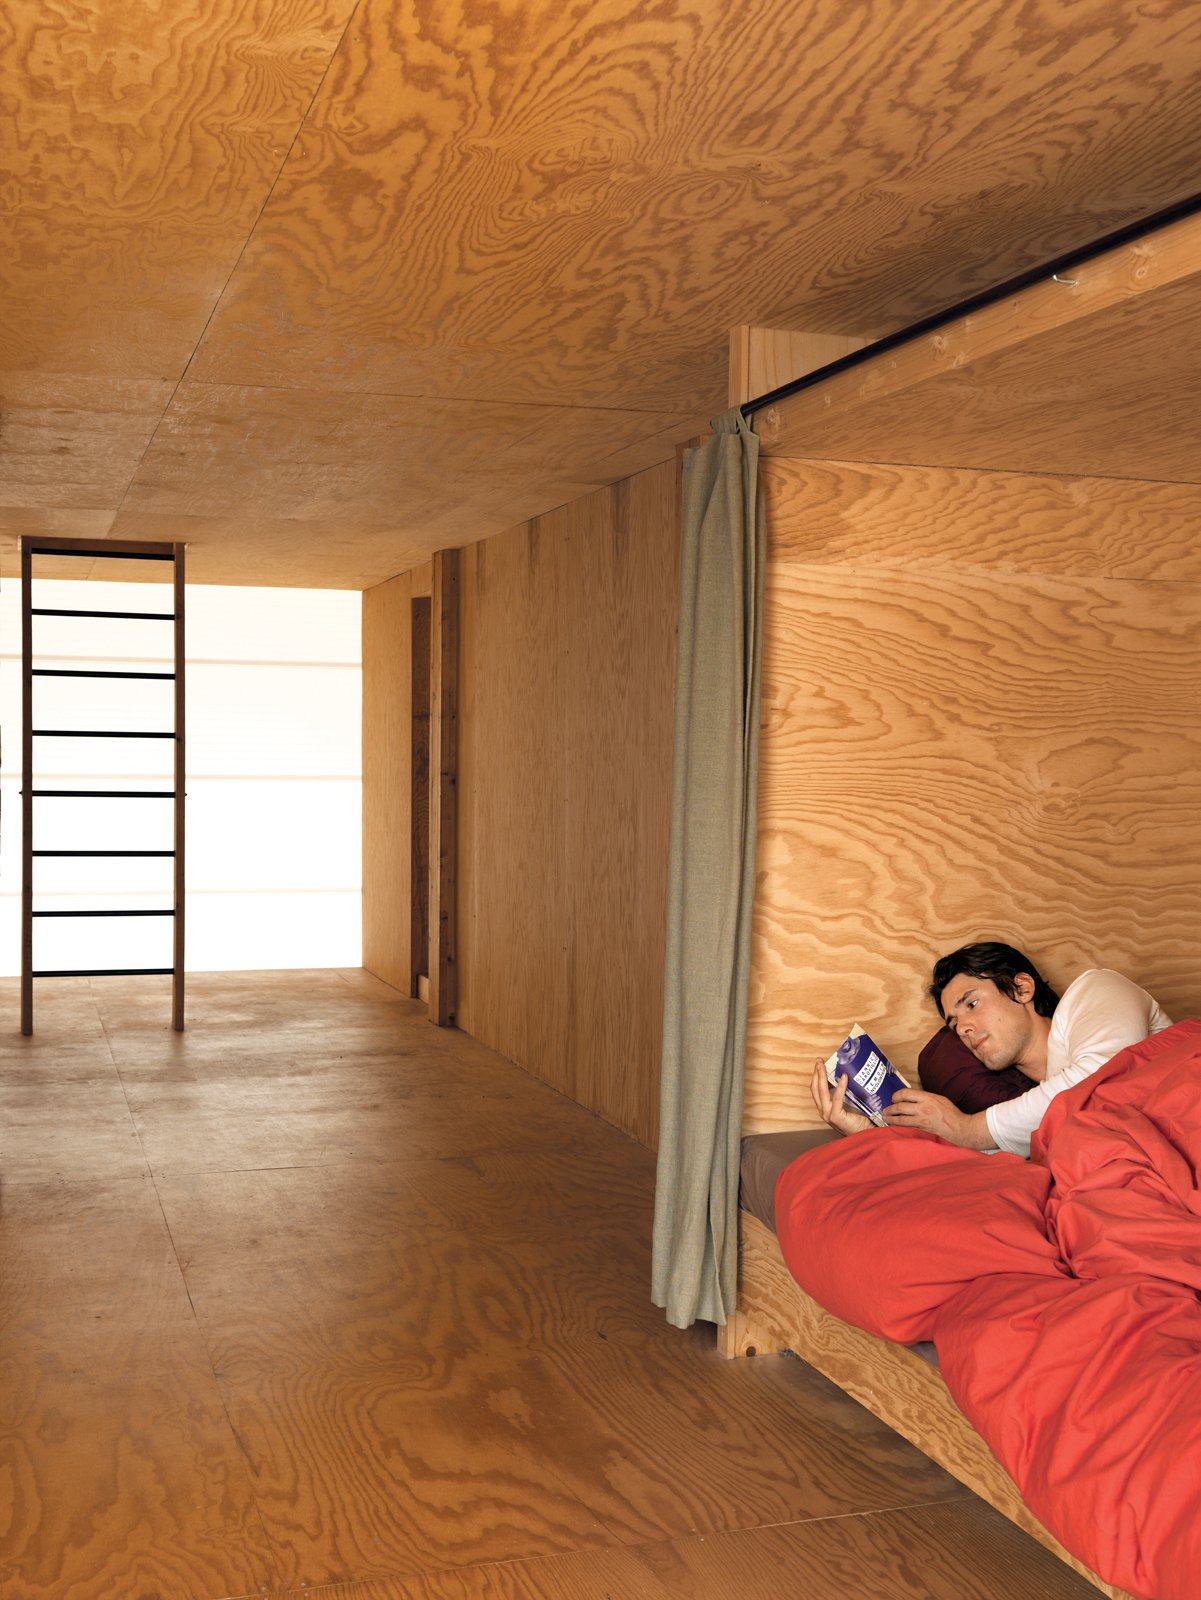 The second floor houses three lits bretons, boxlike compartments where the curtains can be drawn to close sleepers off from the world. Inside, each has a built-in shelf   for personal belongings and a favorite read. Tagged: Bedroom and Bed.  Photo 10 of 11 in Modern Wooden A-Frame Retreat in France